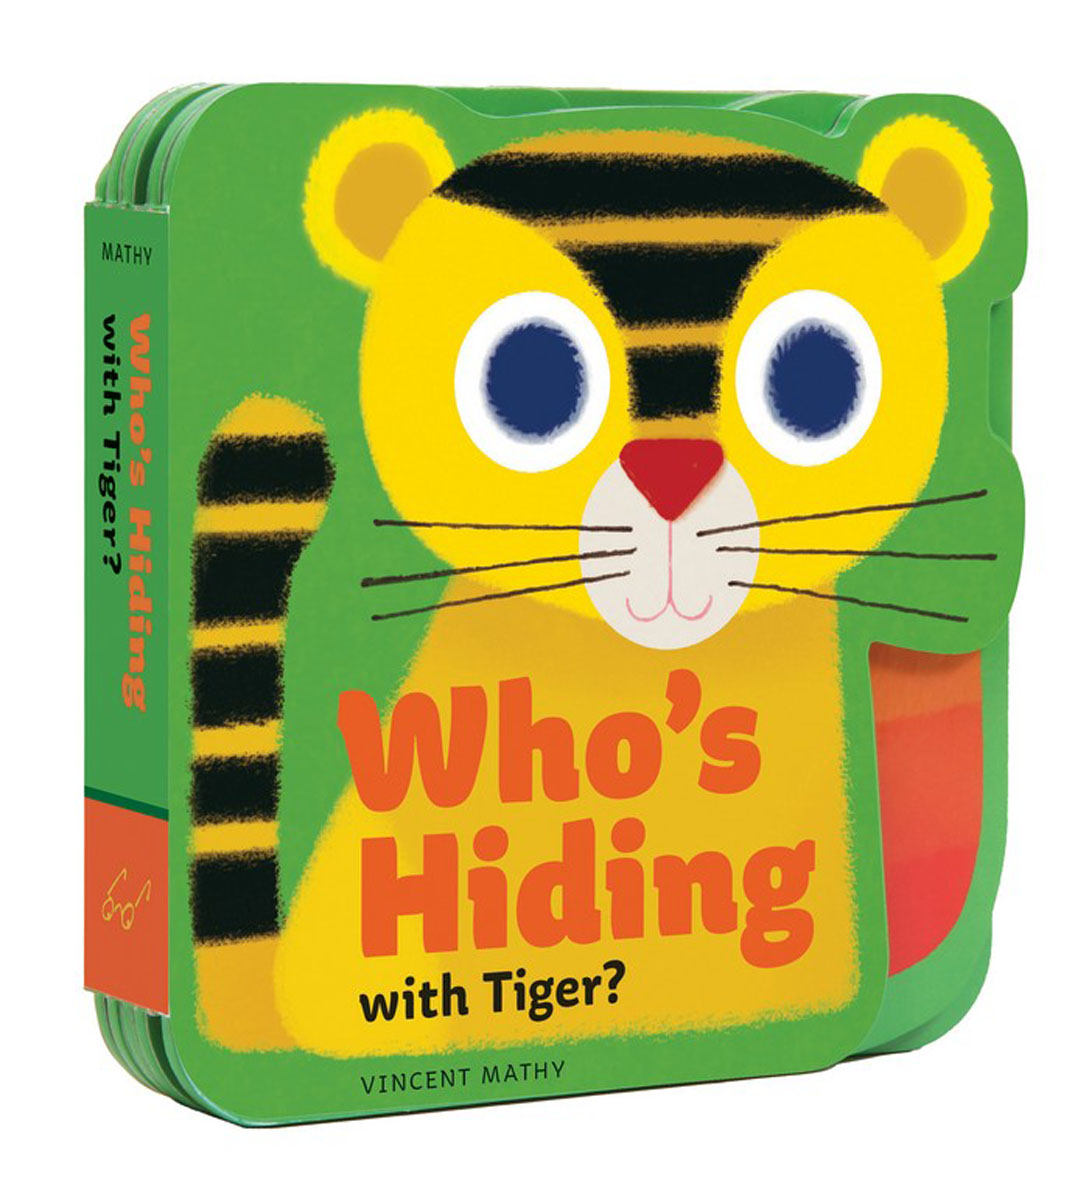 Who's Hiding in the Jungle? the spy with 29 names page 3